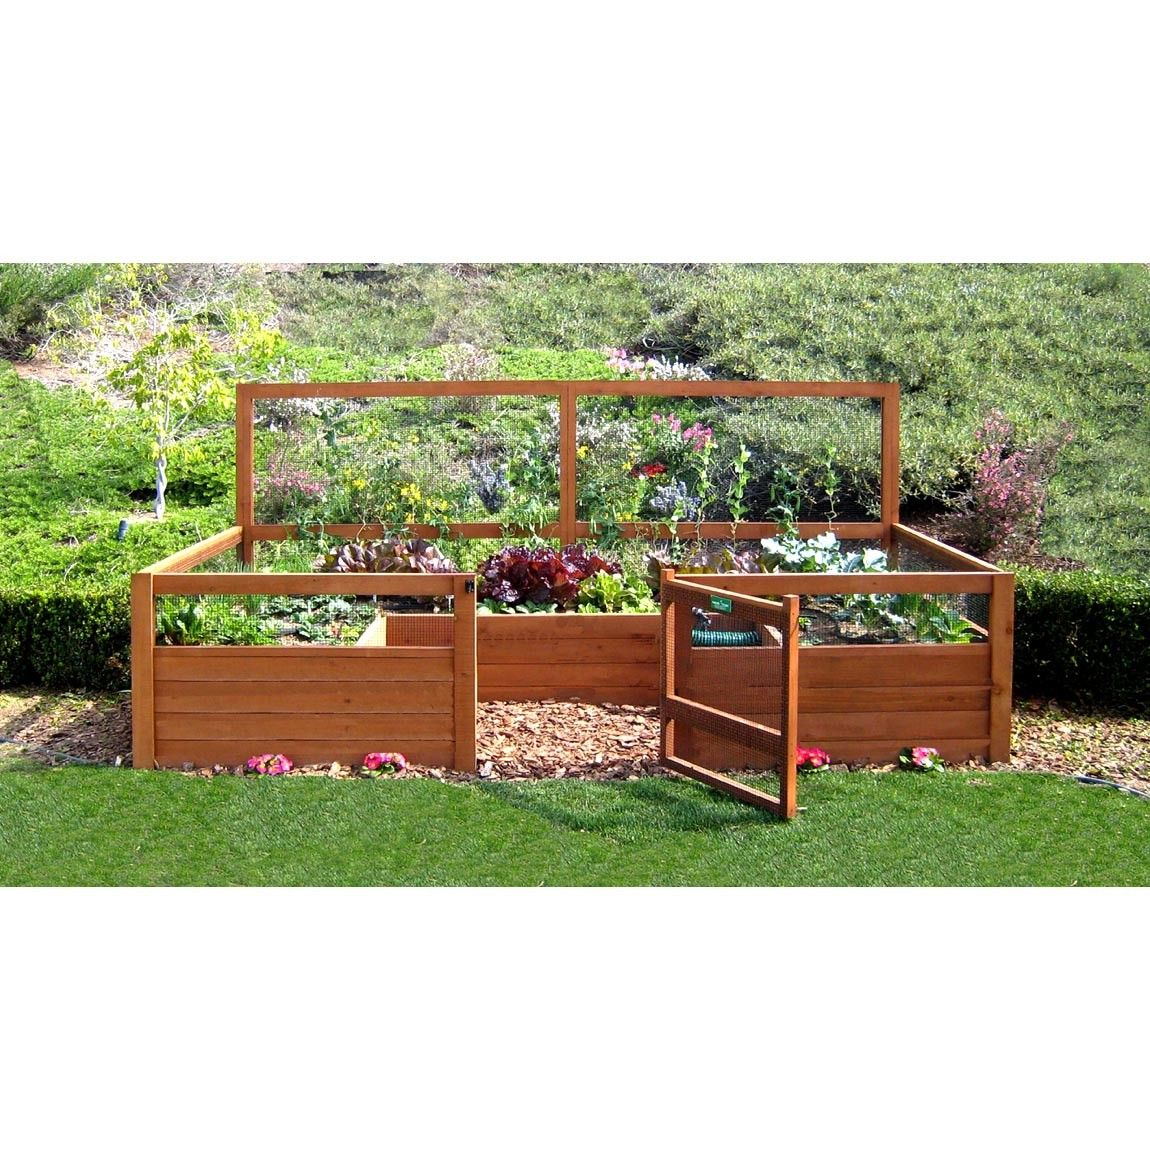 Raised Bed Gardening With A Fence Backyard Vegetable Gardens Small Vegetable Gardens Garden Kits